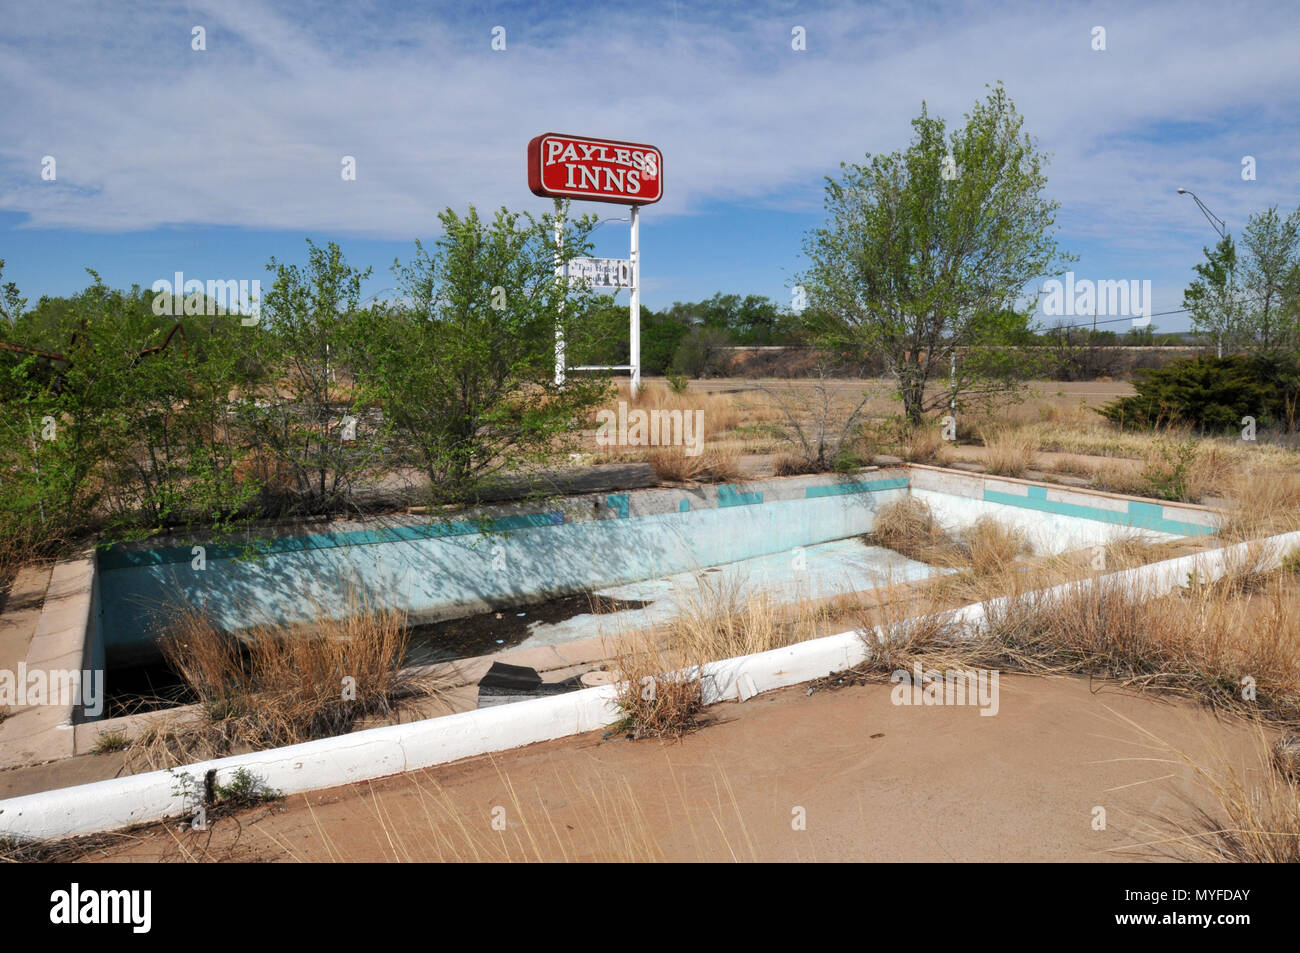 The Empty Swimming Pool At The Payless Inns Property In Tucumcari New Mexico The Abandoned Motel On Route 66 Was Destroyed In An Arson Fire In 2014 Stock Photo Alamy